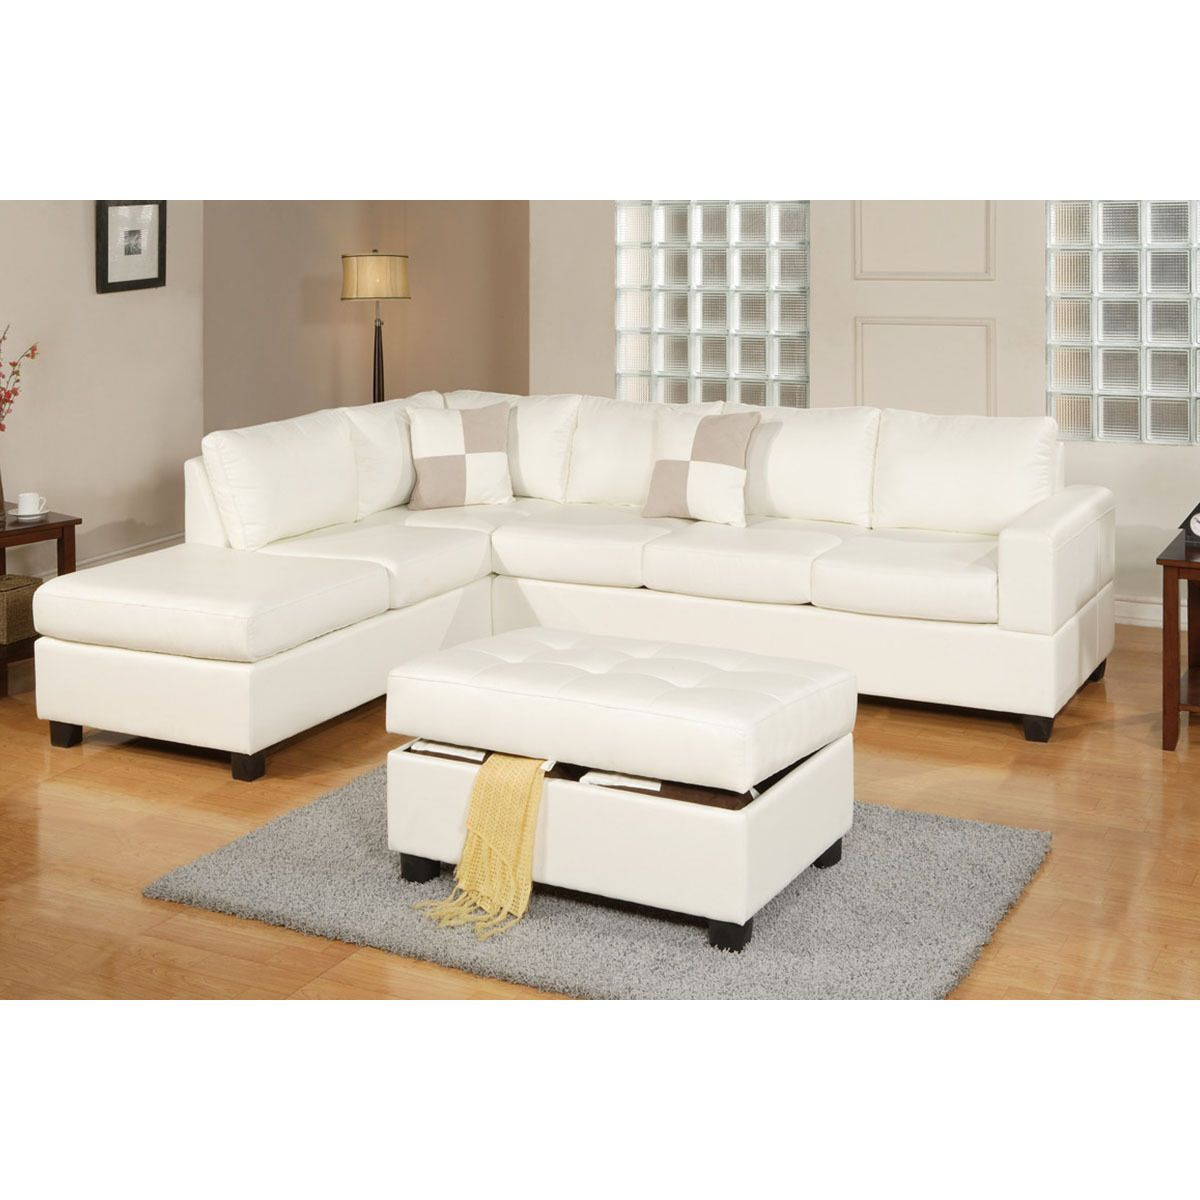 Poundex Lombardy Bonded Leather Sectional Sofa With Ottoman And